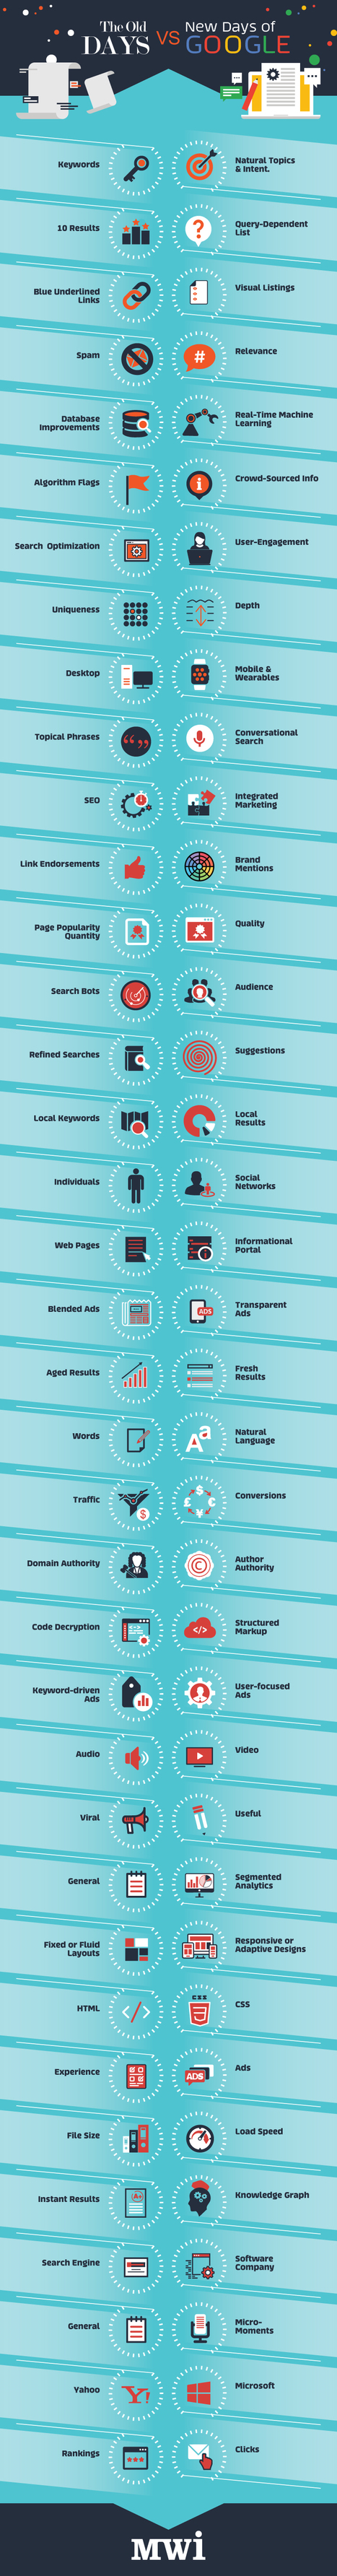 The Old Days VS New Days of Google [Infographic] | On education | Scoop.it